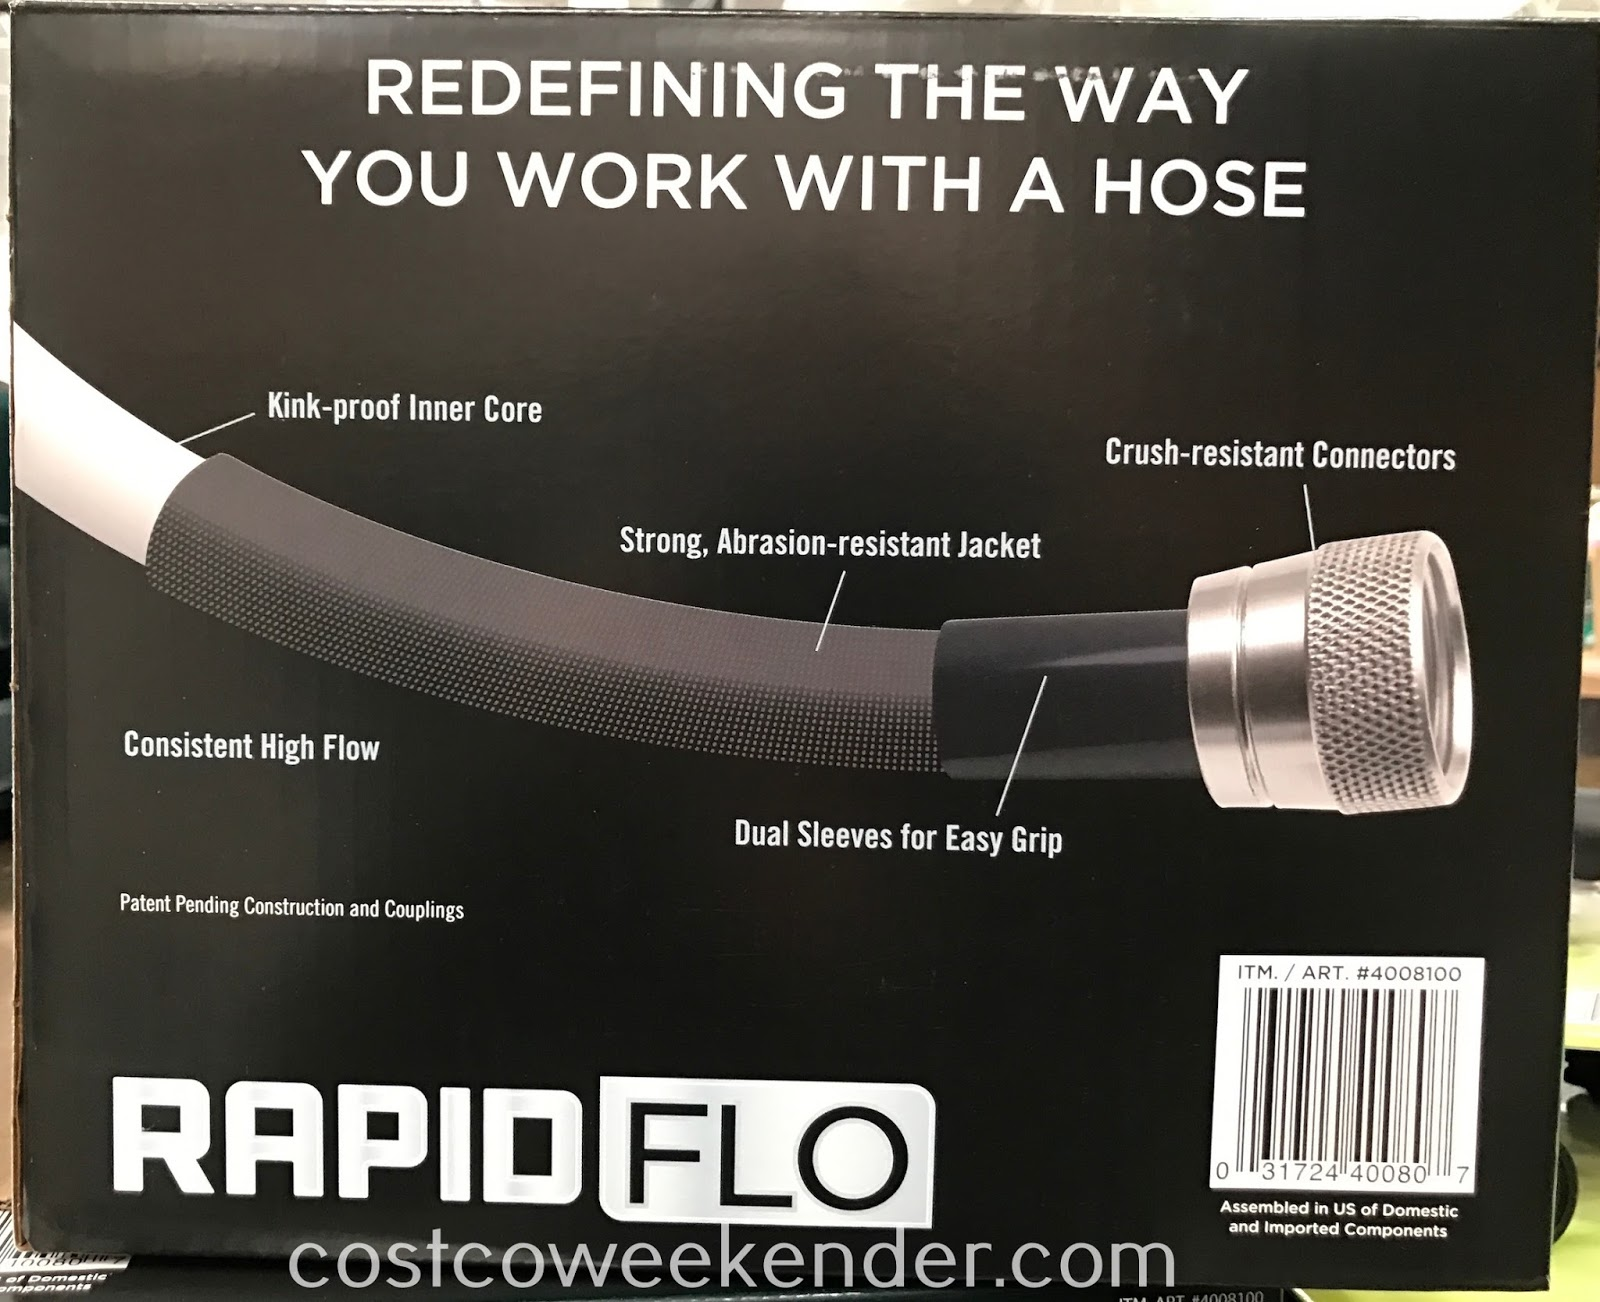 Water the plants in your backyard with the Teknor Rapid Flo Garden Hose